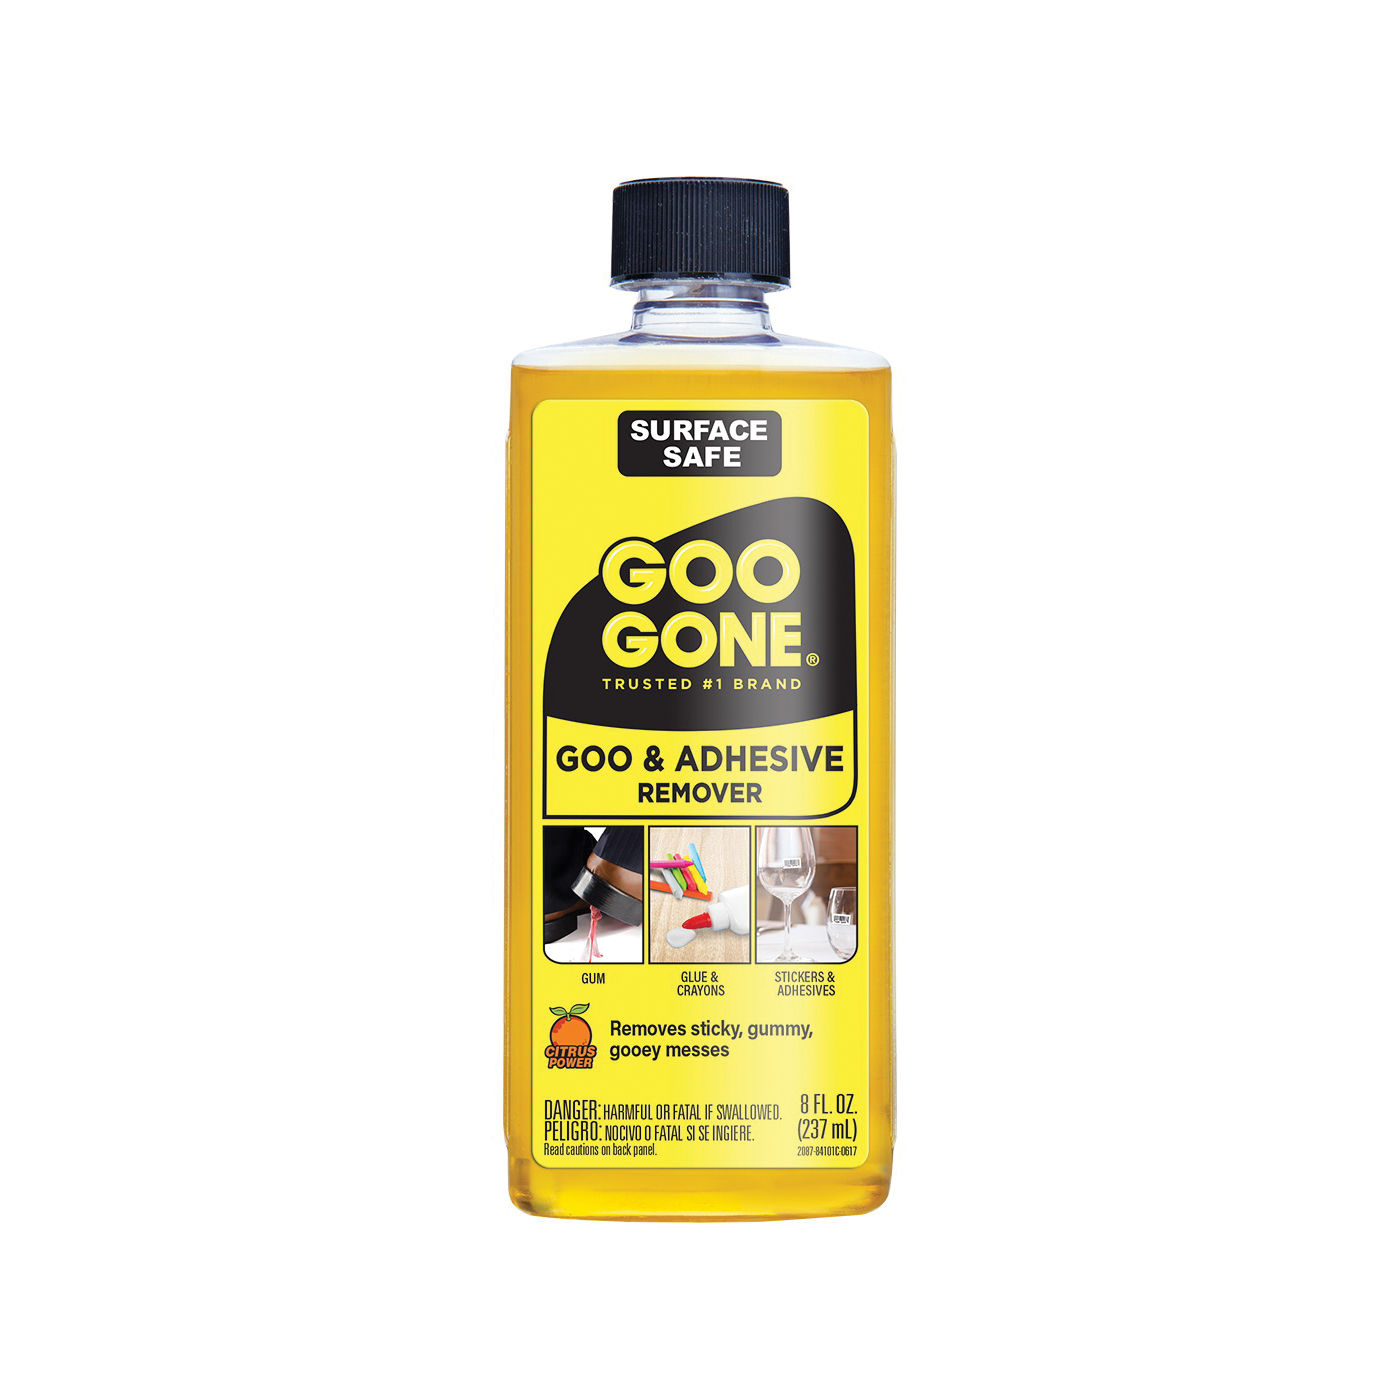 Picture of Goo Gone 2087 Goo and Adhesive Remover, 8 oz Package, Bottle, Liquid, Citrus, Yellow